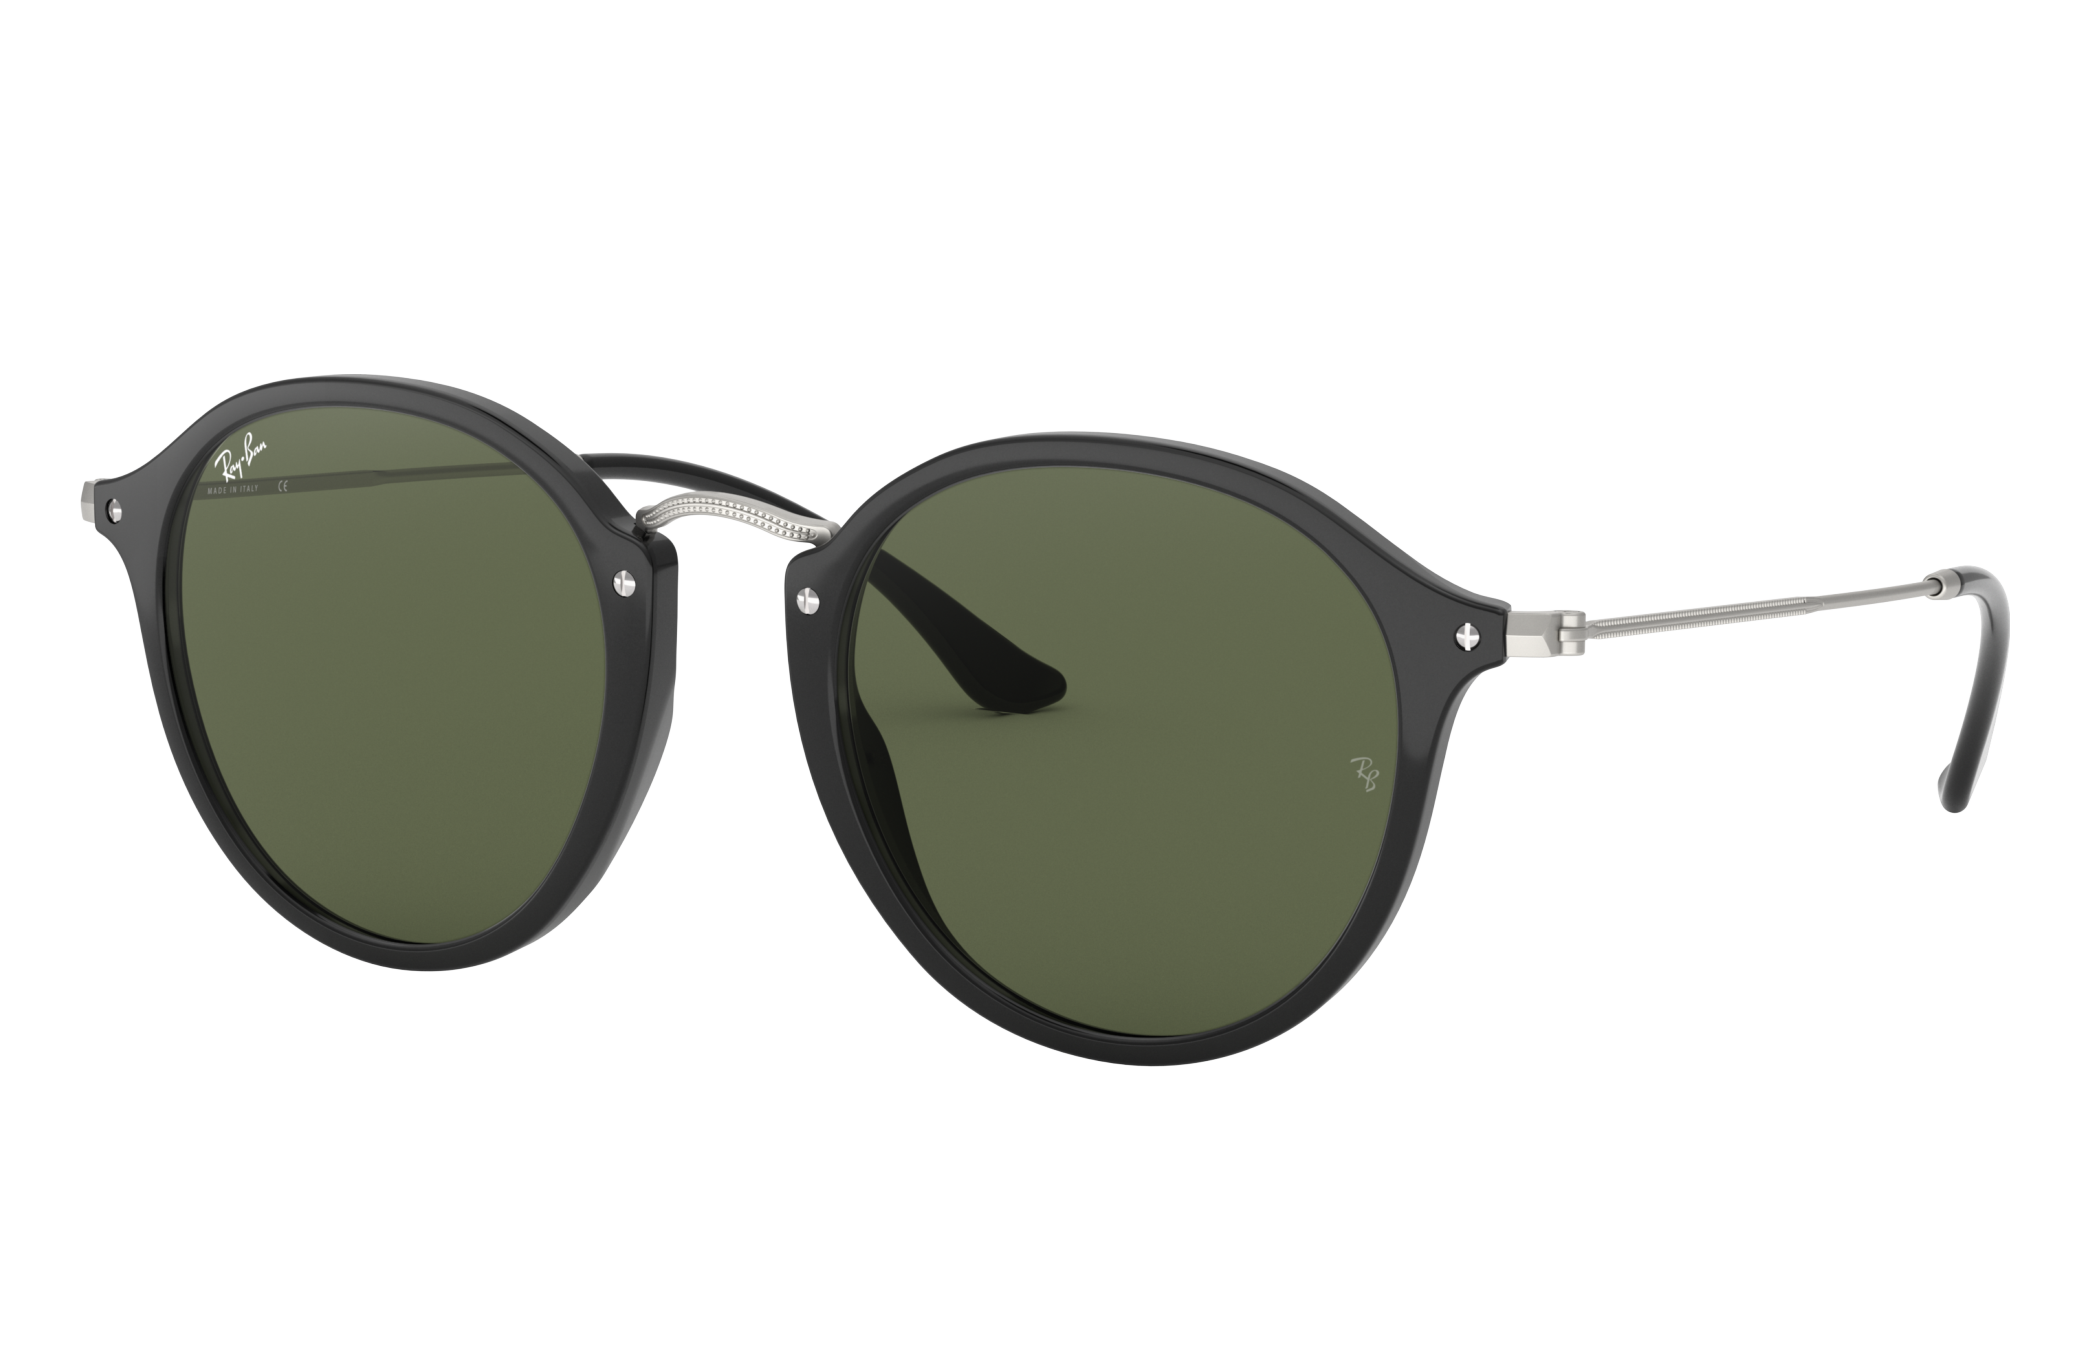 Ray-Ban Round Fleck Low Bridge Fit Silver, Green Lenses - RB2447F